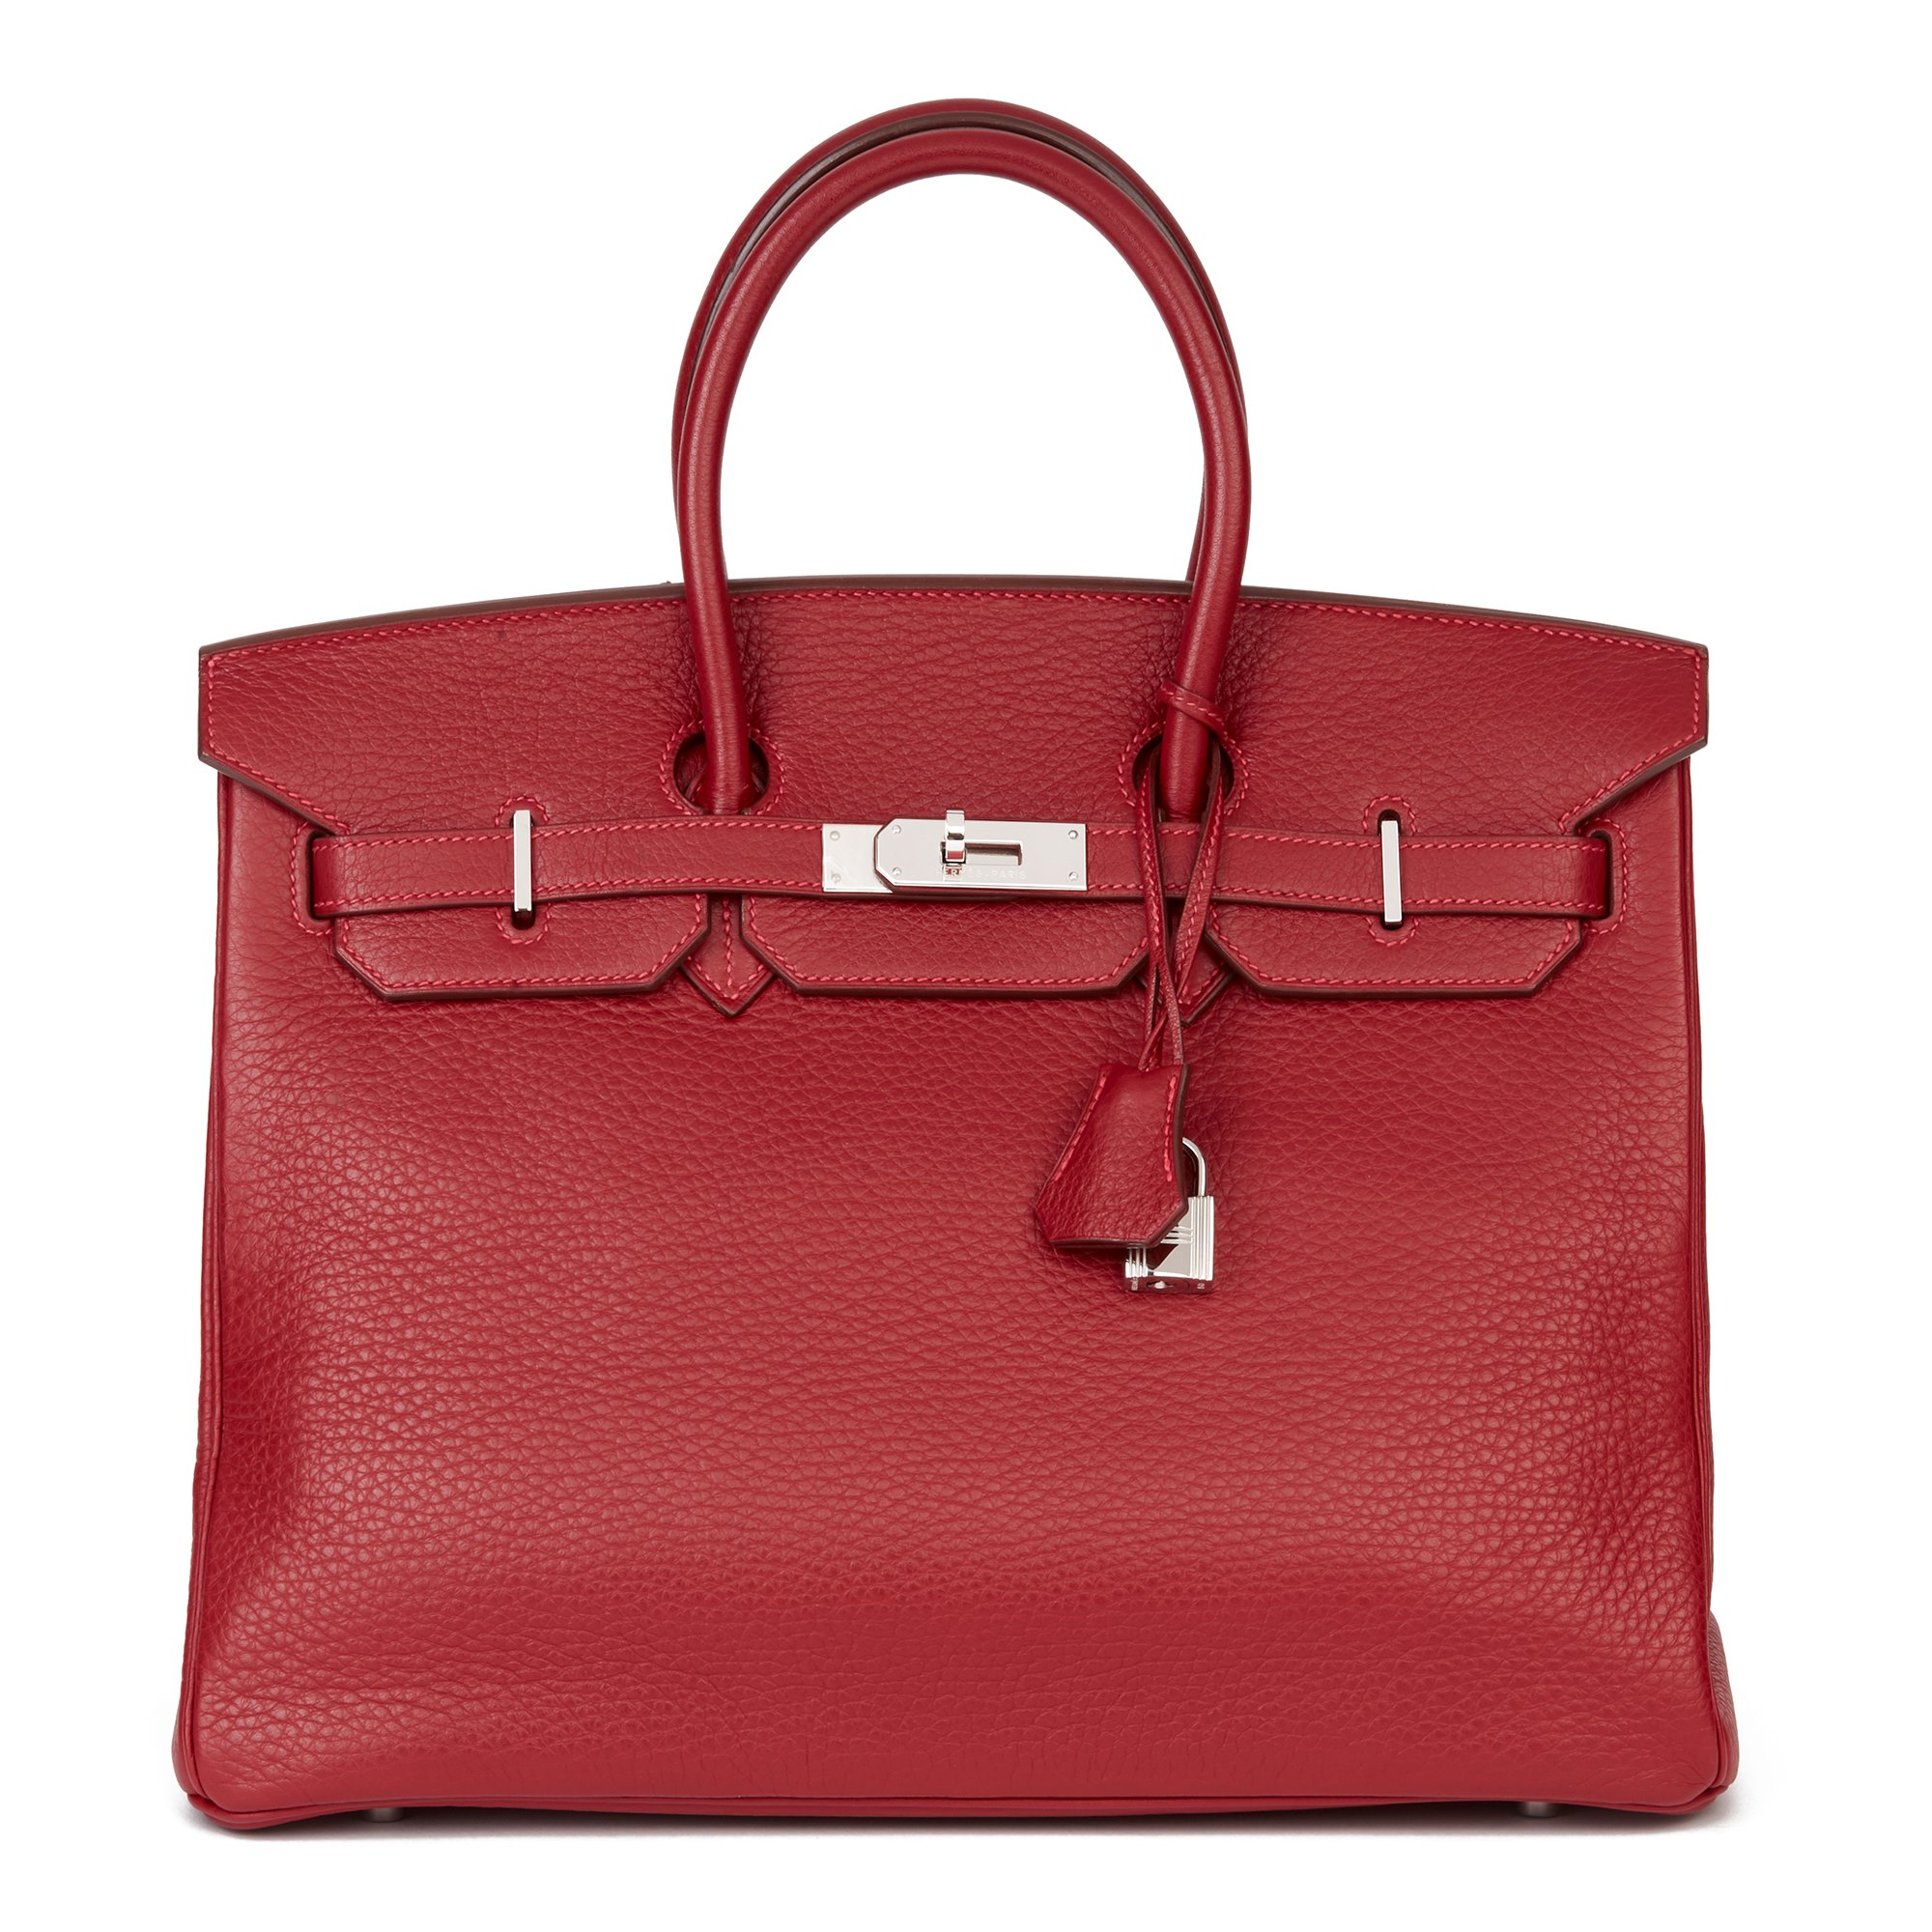 Hermès Rouge Garance Fjord Leather Birkin 35cm